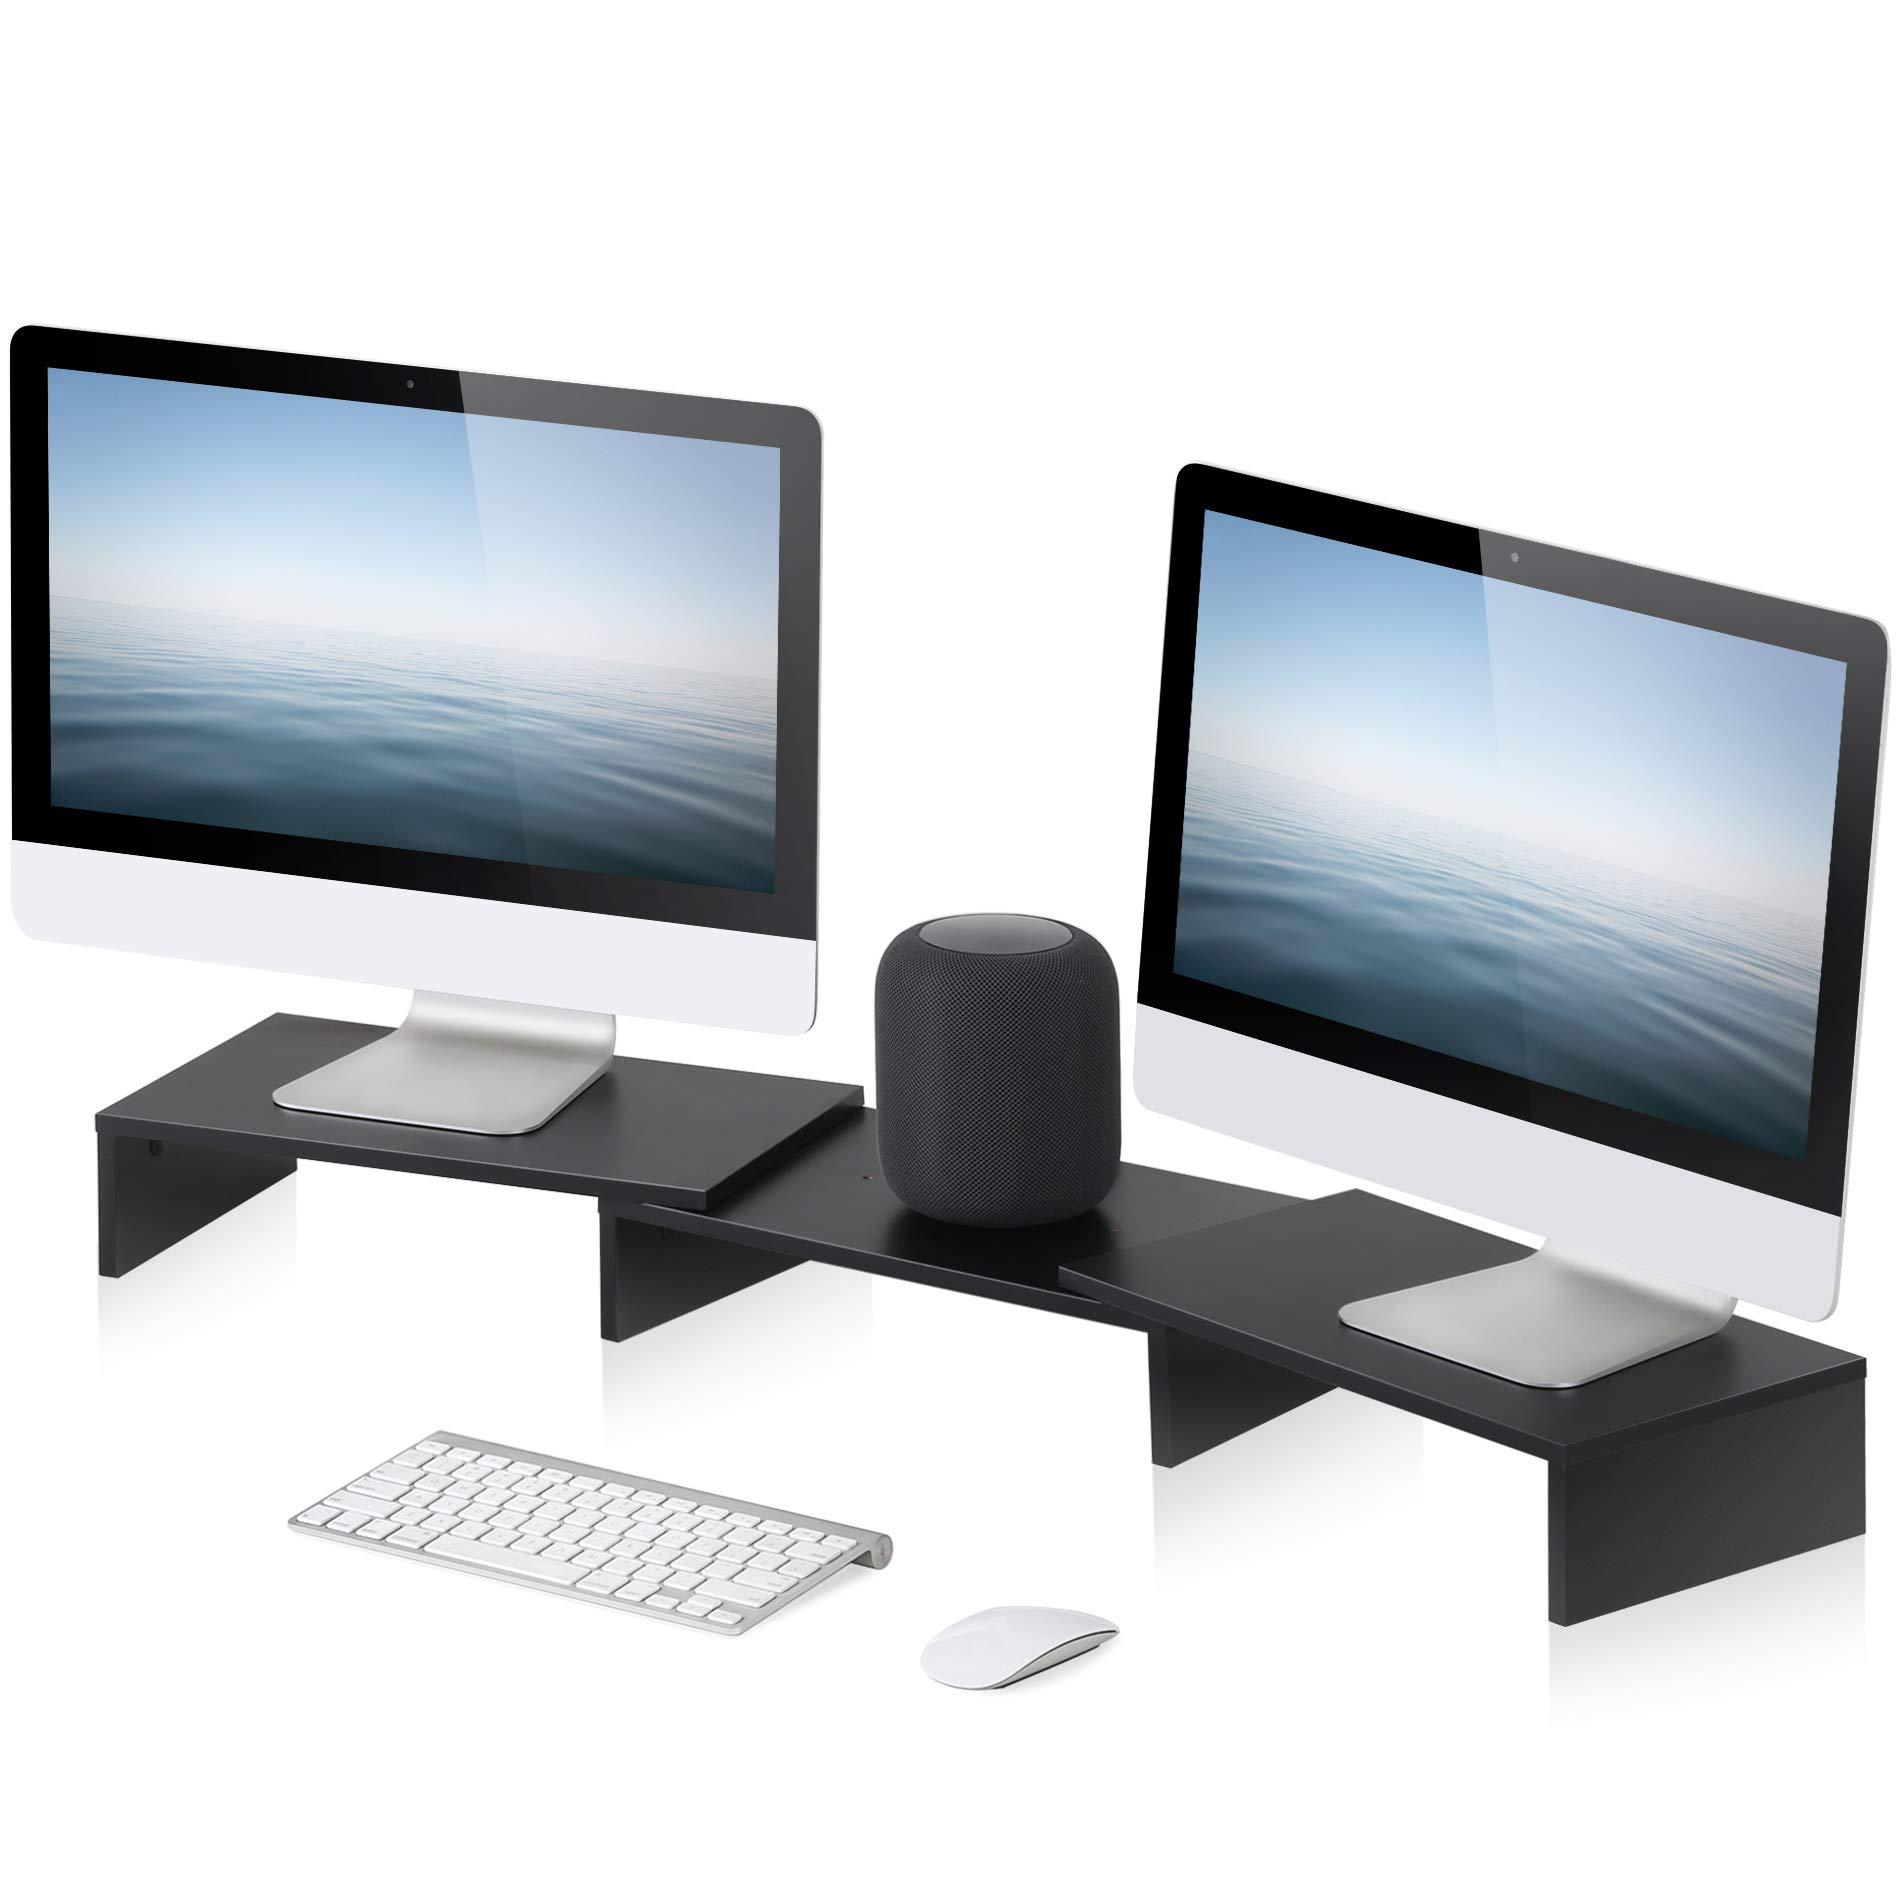 FITUEYES 3 Shelf Monitor Stand Riser with Adjustable Length and Angle,DT108001WB by FITUEYES